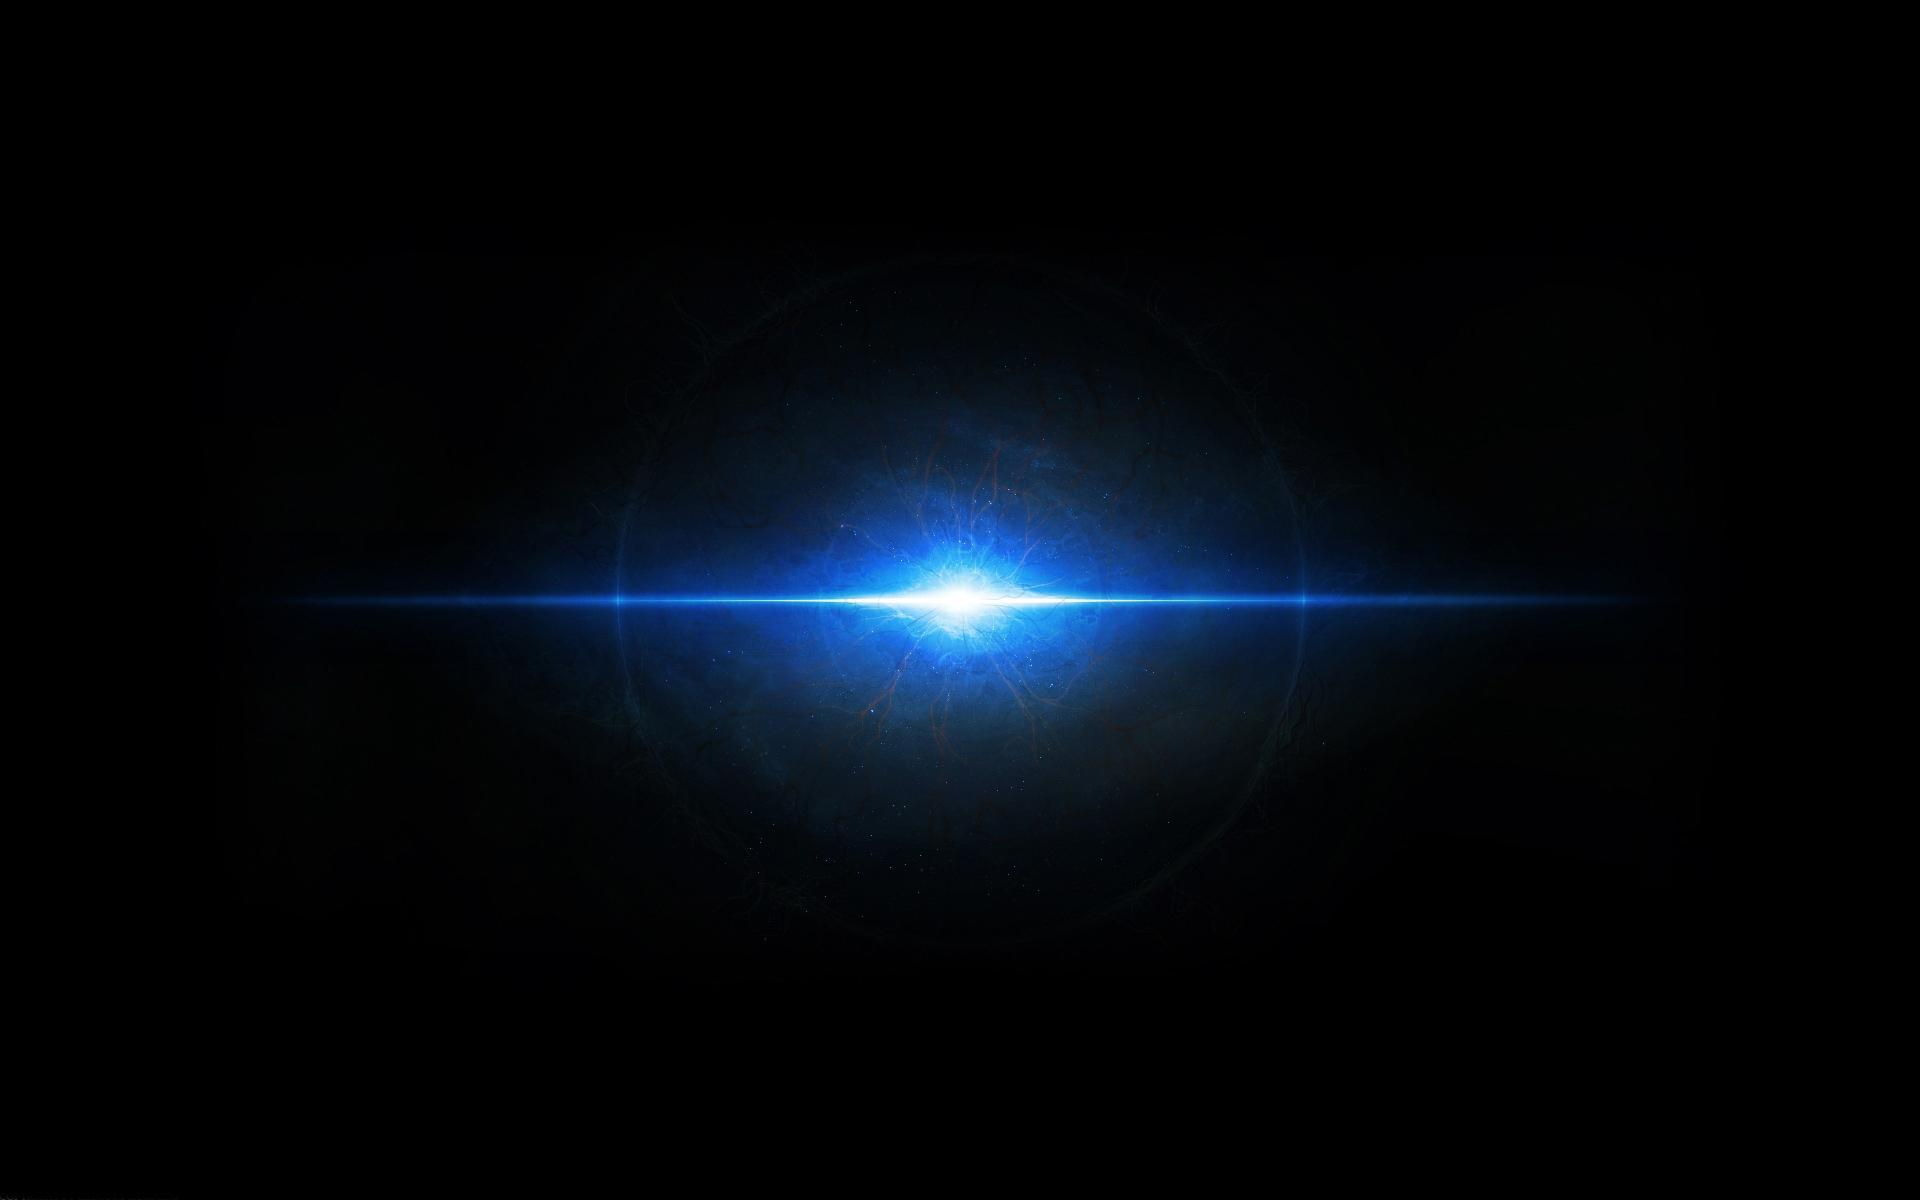 Black-and-Blue-Light-Wallpaper.jpg | FitNish.com